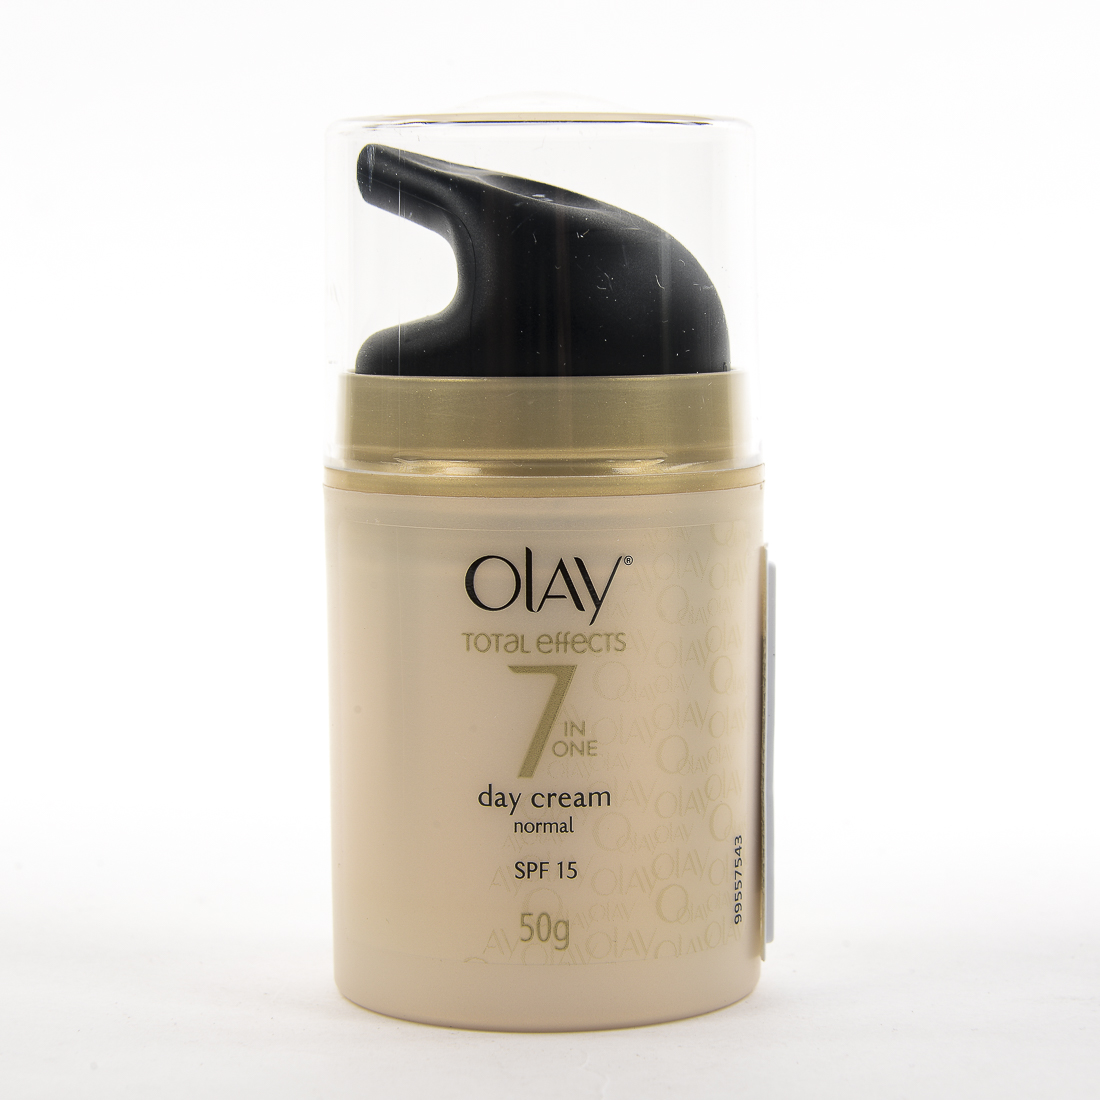 Philippines Olay Total Effects 7 In 1 Day Cream Spf15 50g New Price One Anti Ageing Night 50gr